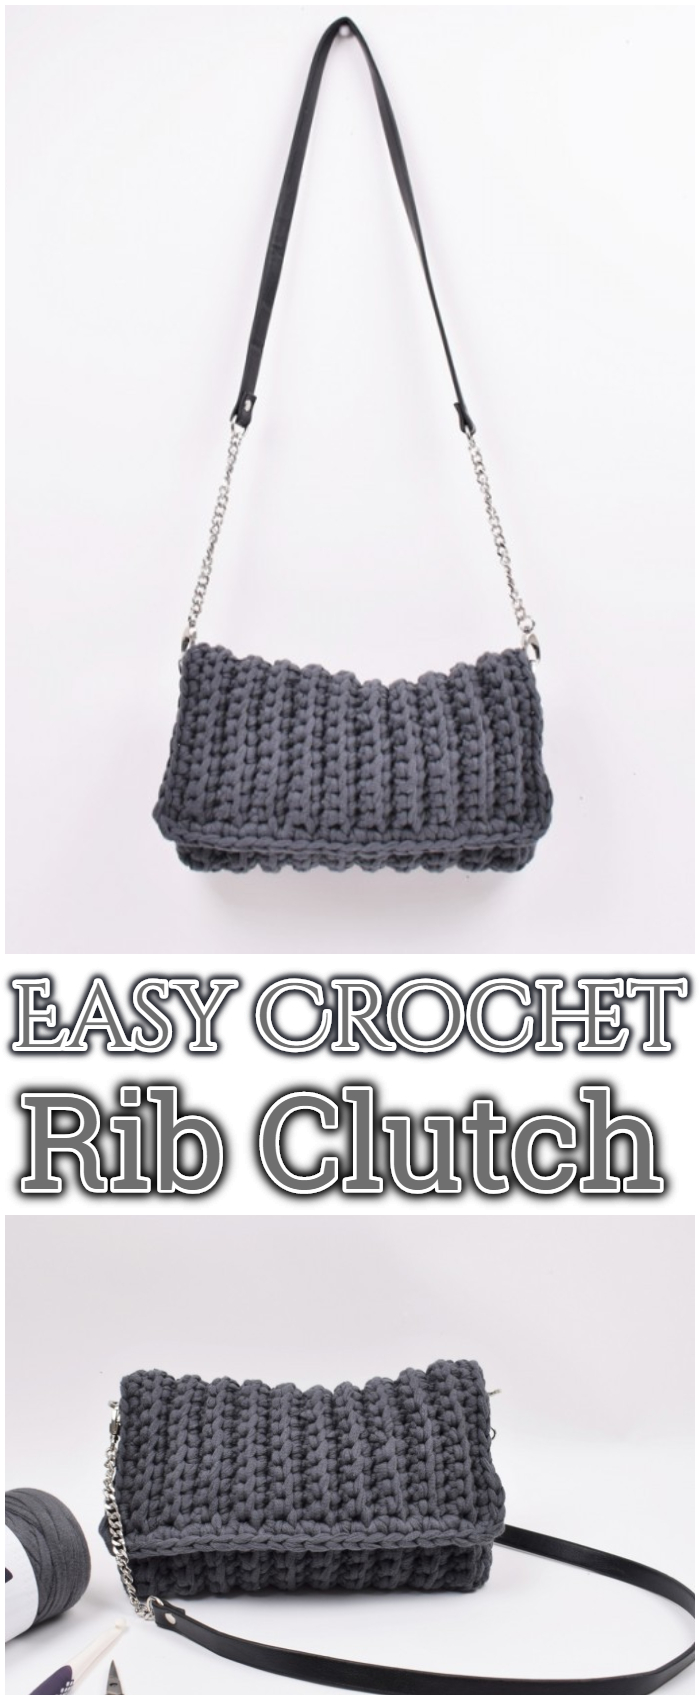 Easy Crochet Rib Clutch